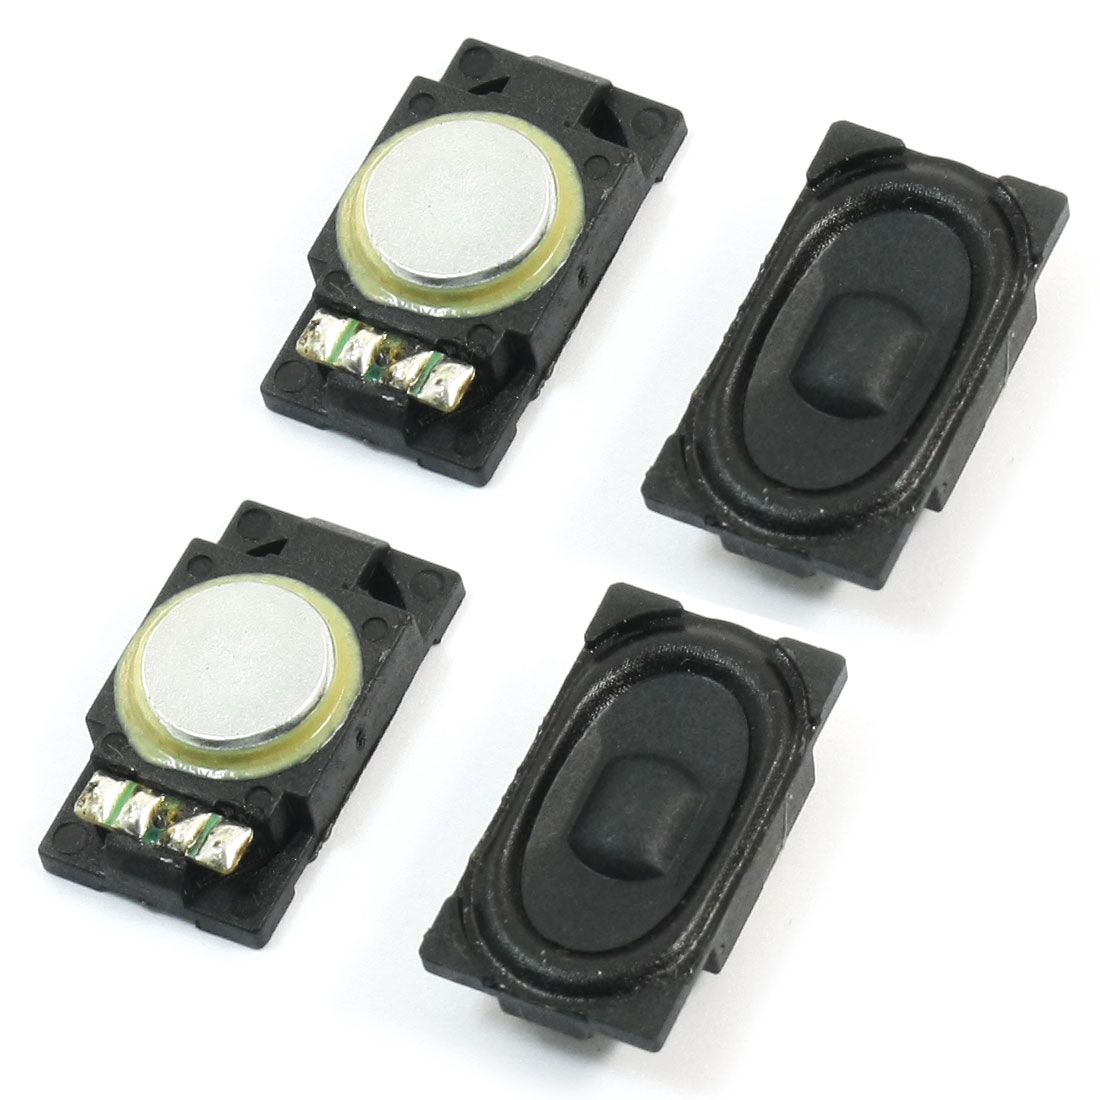 4 Pcs 25mm x 15mm Rectangle Plastic Shell Magnetic Type Notebook Audio Speaker Loudspeaker Amplifier Trumpet Horn 1W 8 Ohm